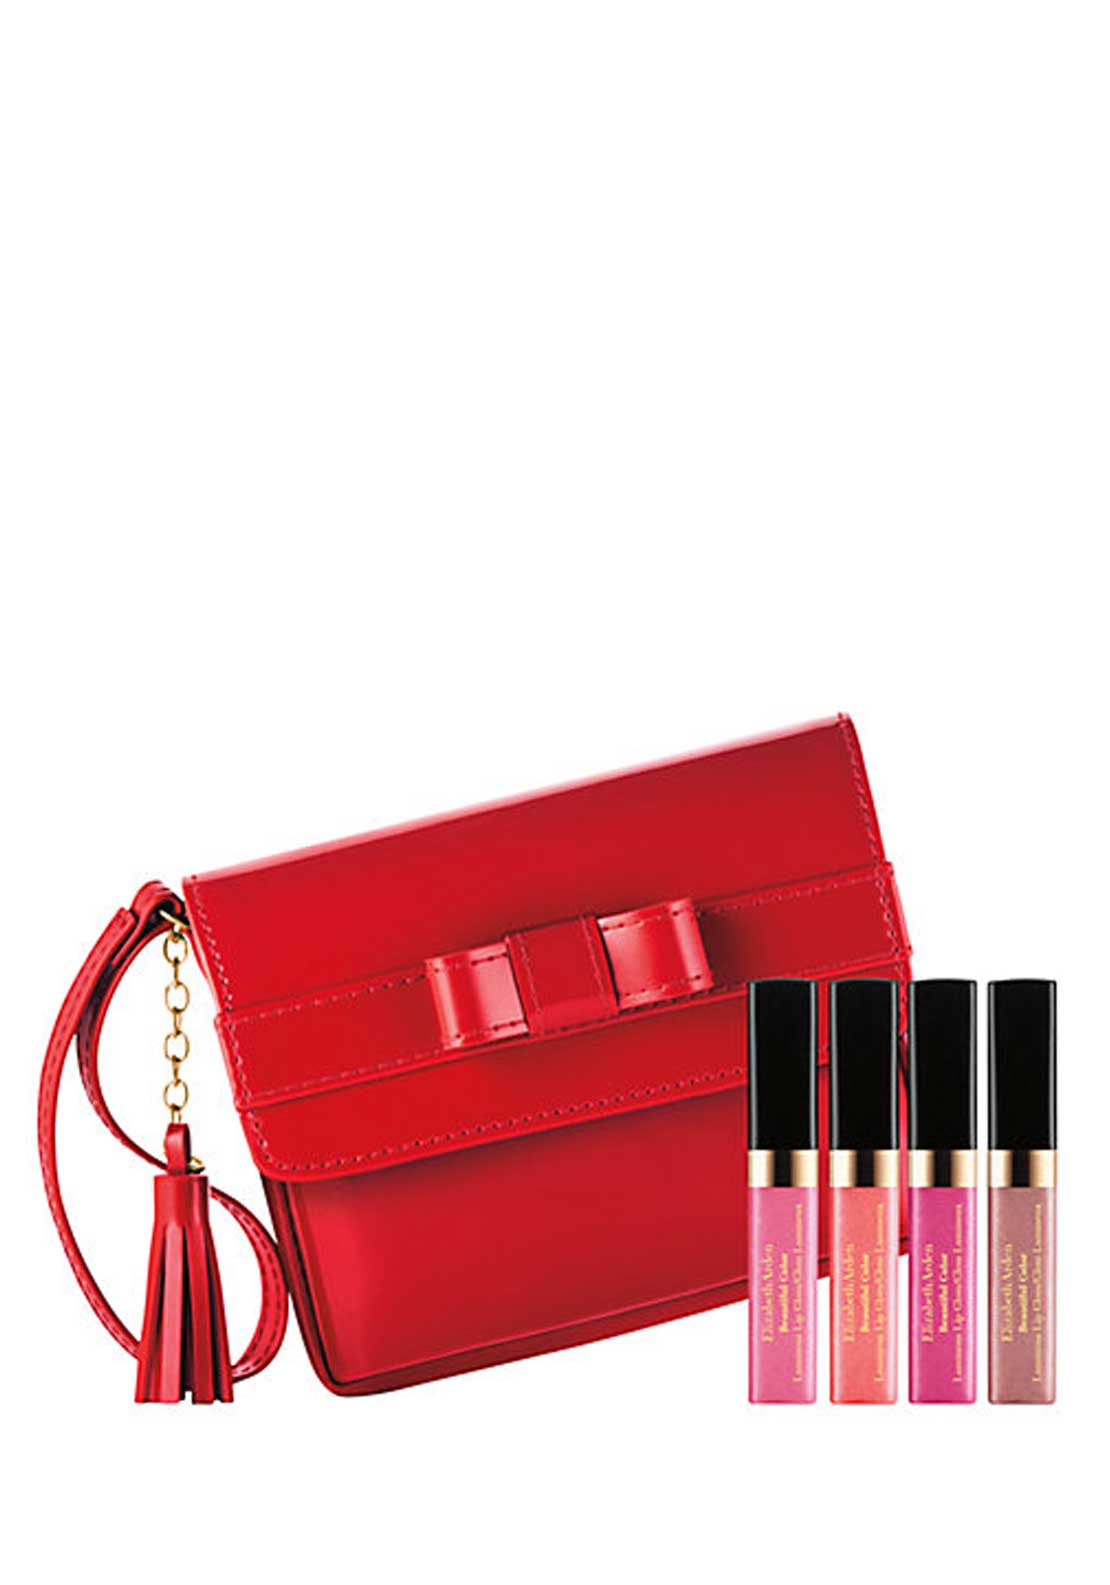 Elizabeth Arden Beautiful Colour Lip Gloss Gift Set, Set of 4